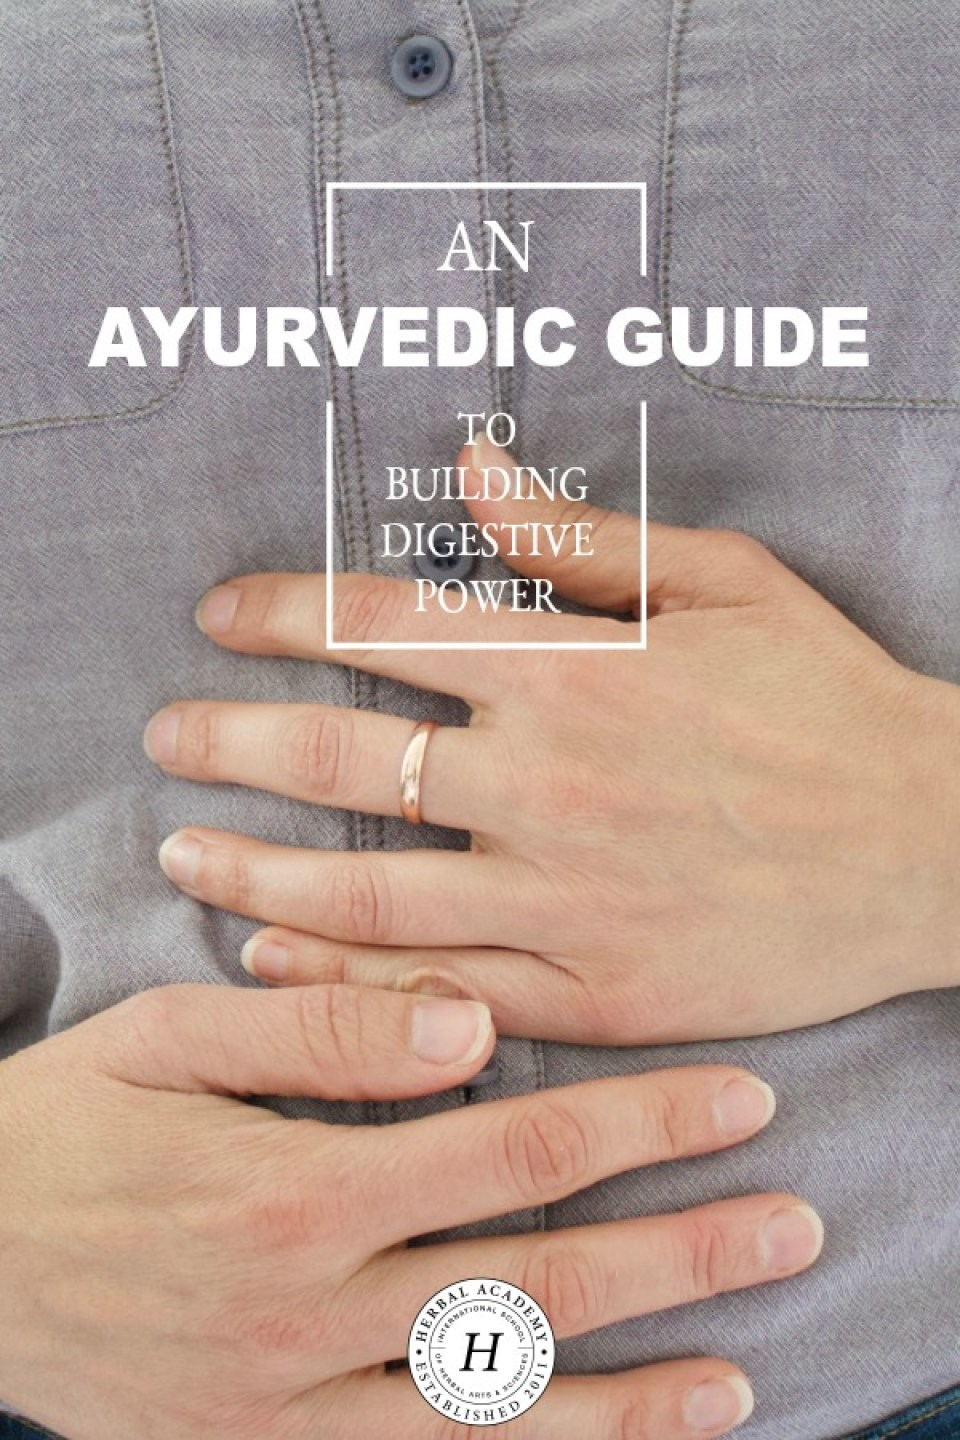 An Ayurvedic Guide to Building Digestive Power | Herbal Academy | Come join us as we explore Ayurvedic methods for improving digestive health naturally, and ultimately, building digestive power.